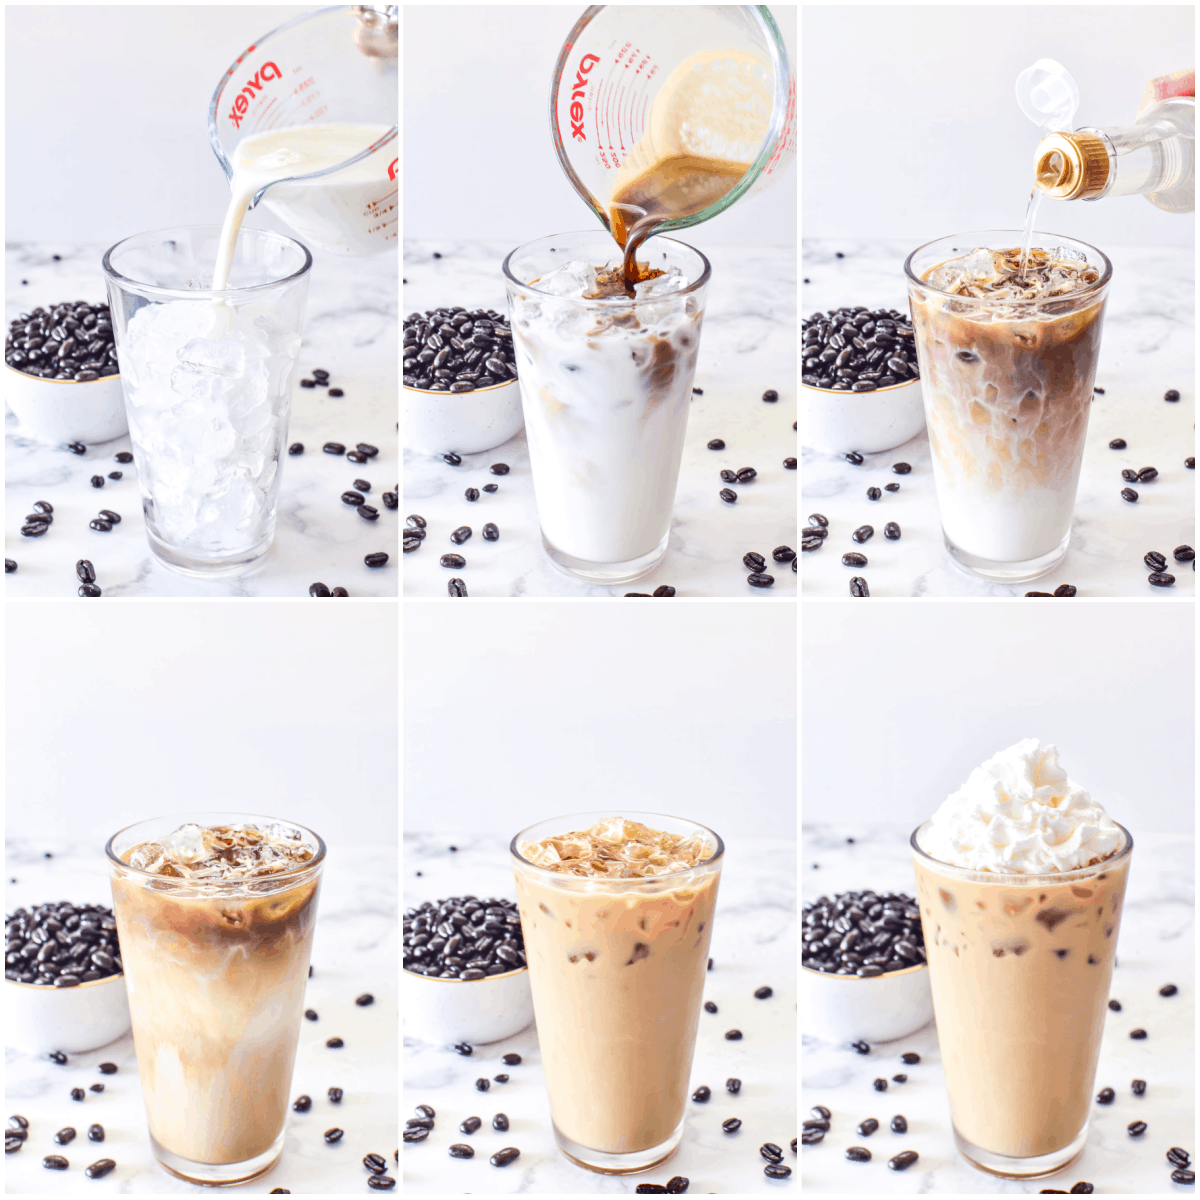 Step by step how to make an Iced Latte